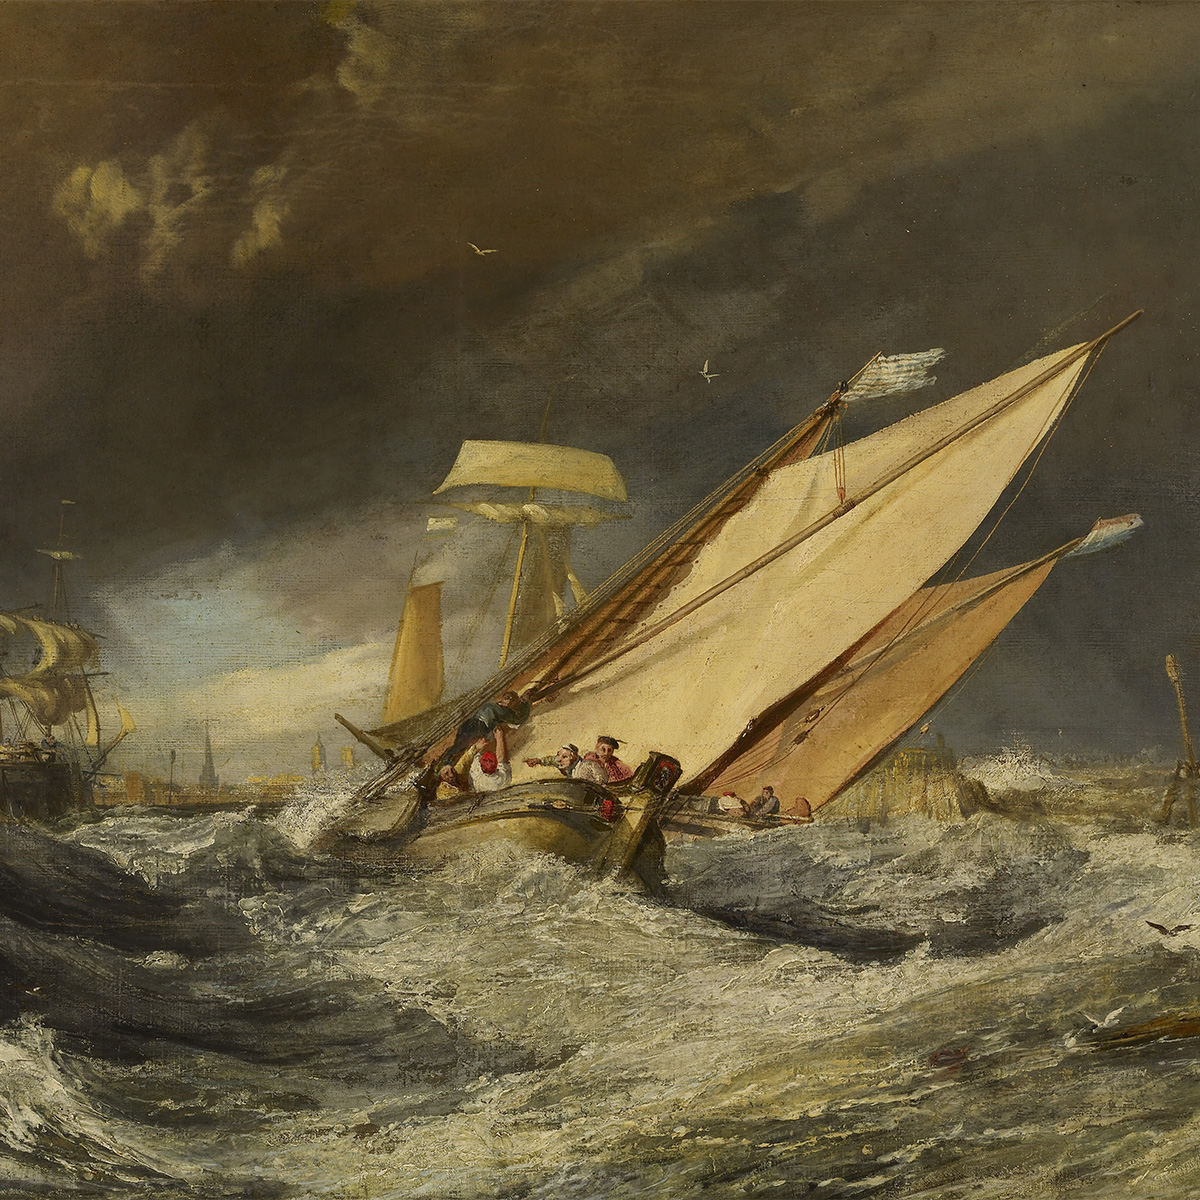 Oil painting of ships entering a harbor. Large waves crash around the center sailboat. Dark gray clouds loom overhead